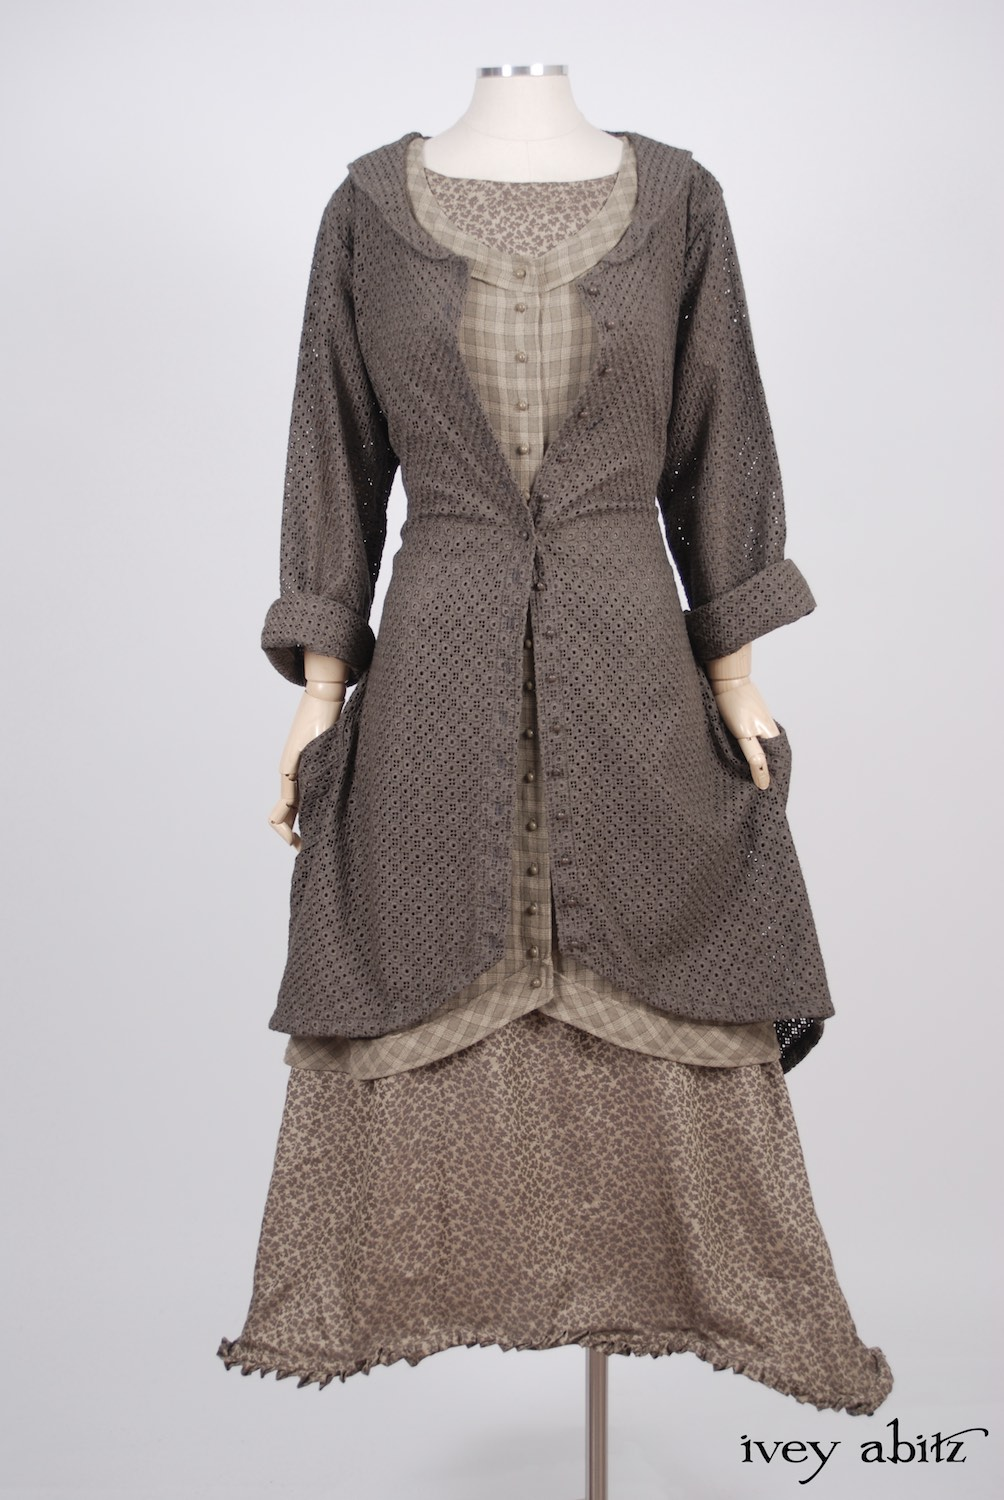 Ivey Abitz - Truitt Duster Coat in Flaxseed Embroidered Eyelet - Truitt Frock in Flaxseed Plaid Weave  - Mathilda Frock in Flaxseed Leafy Silk Linen, Low Water Length